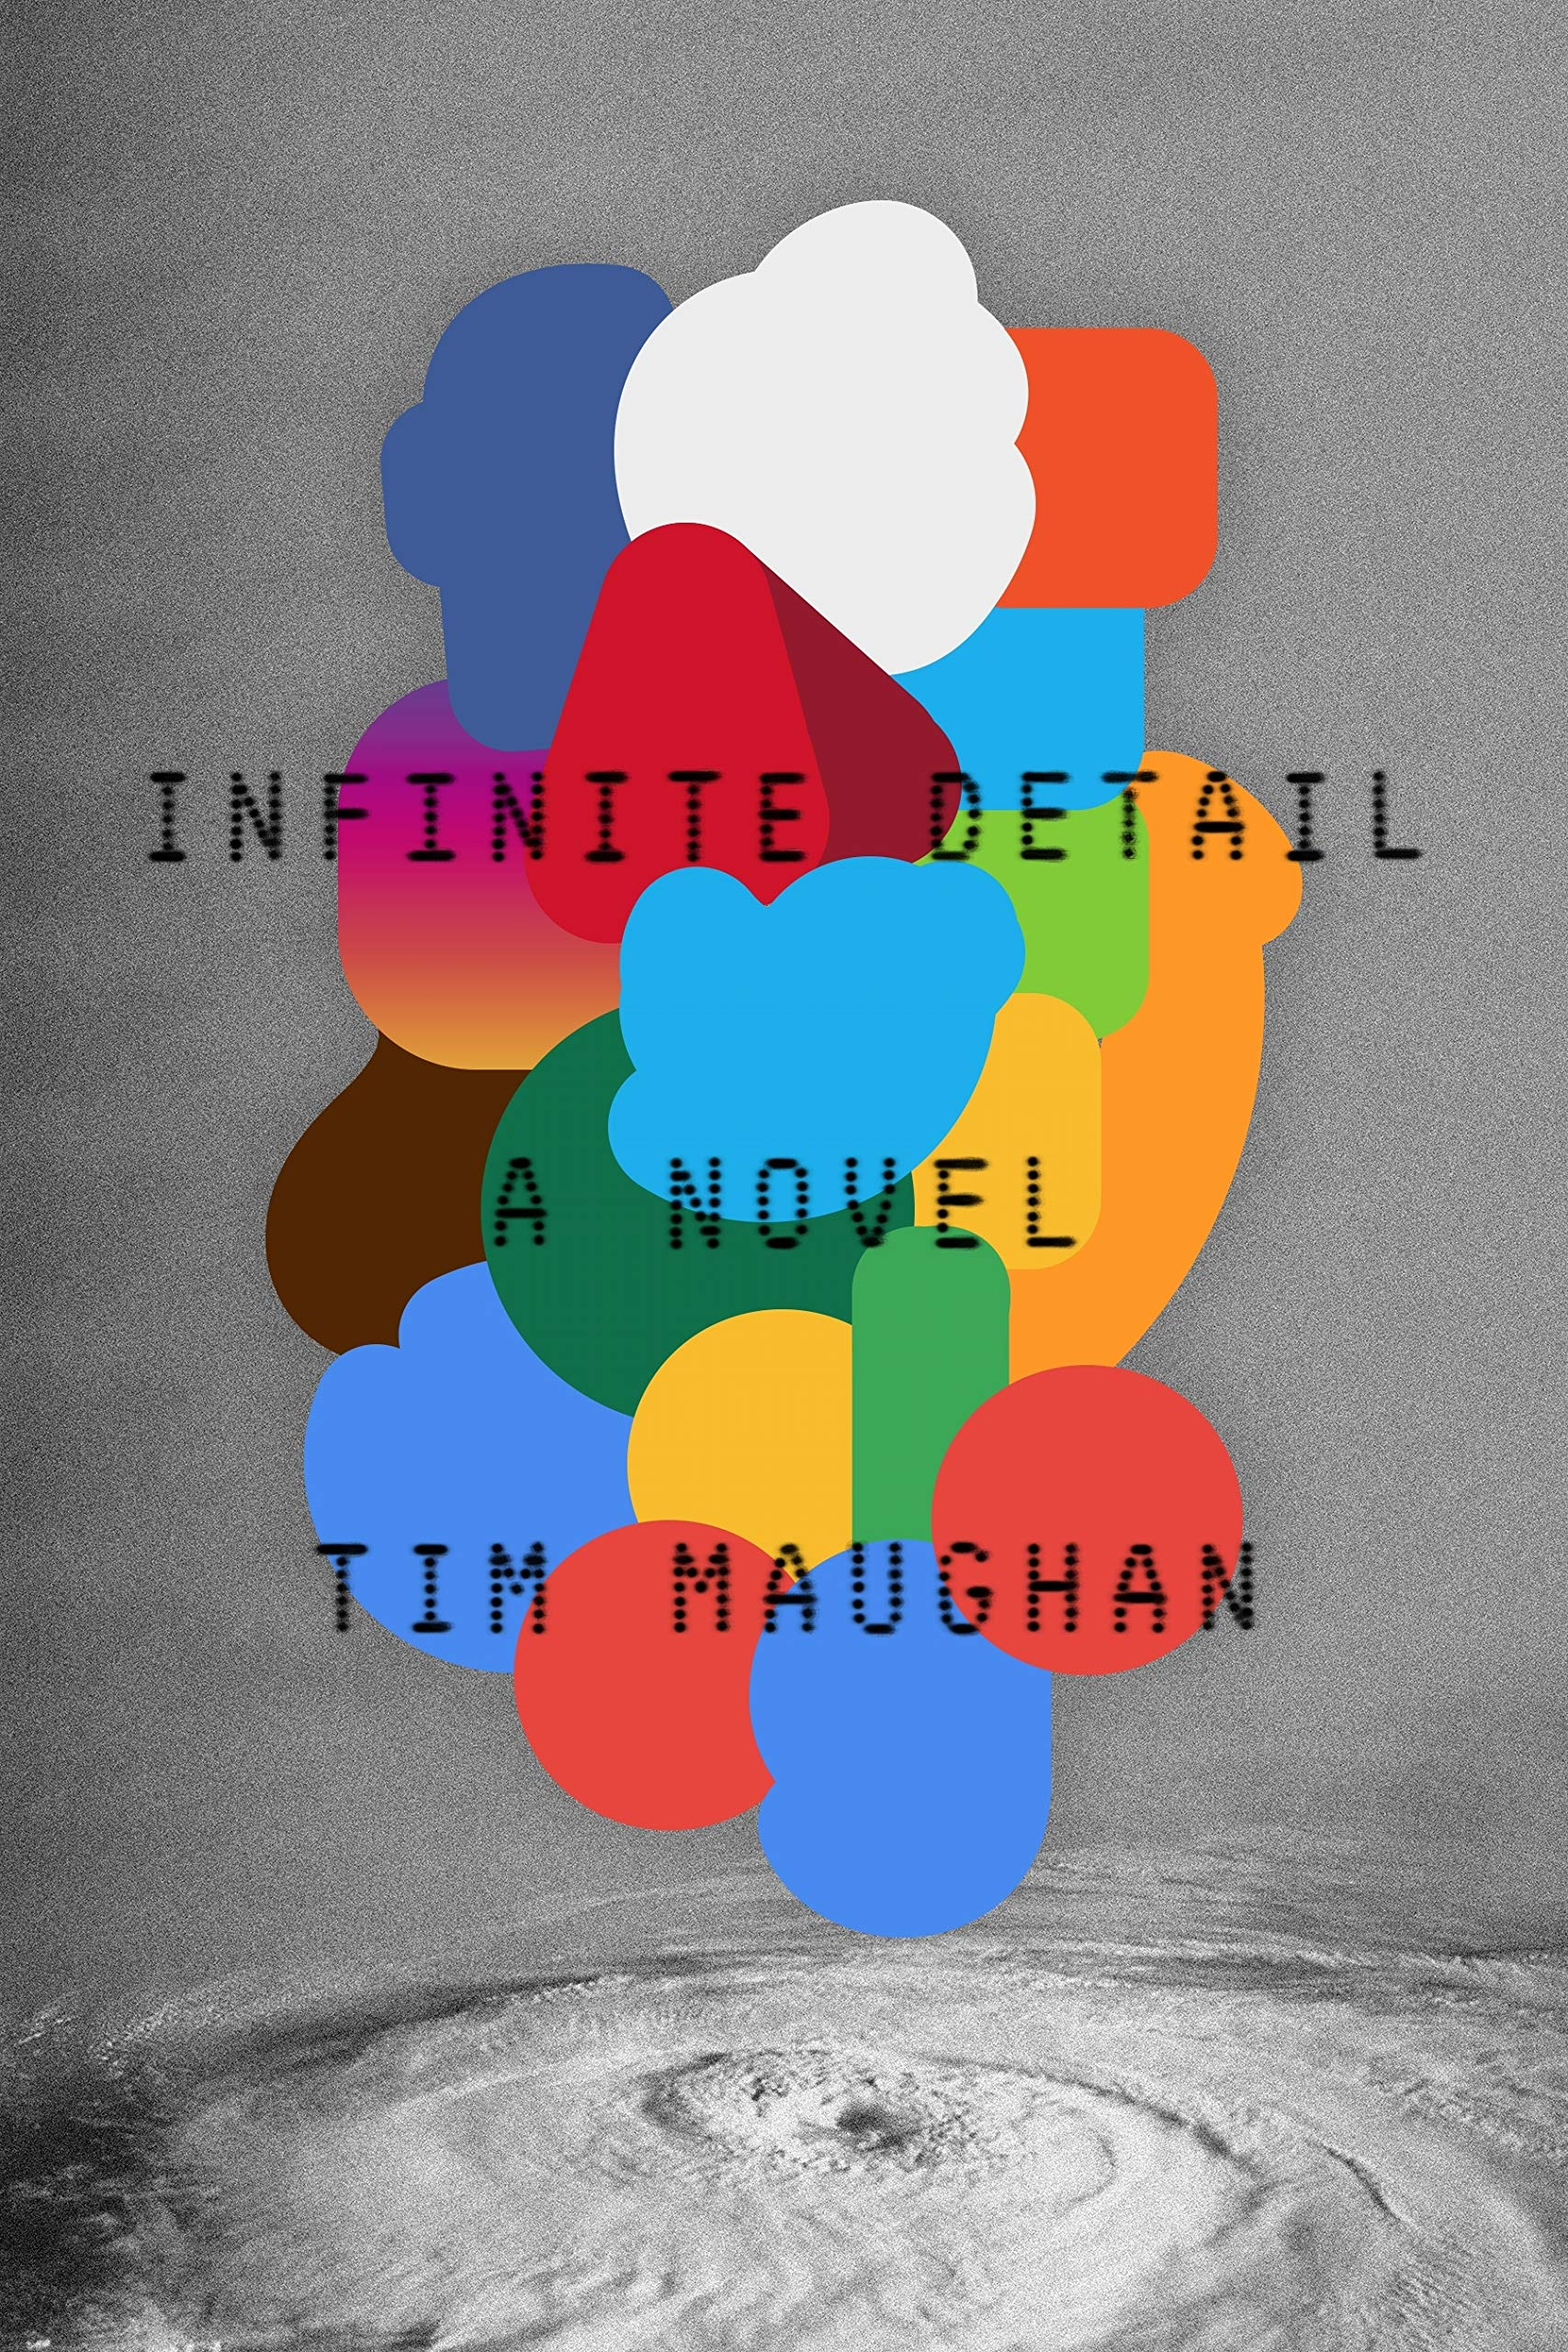 Image result for infinite detail tim maughan